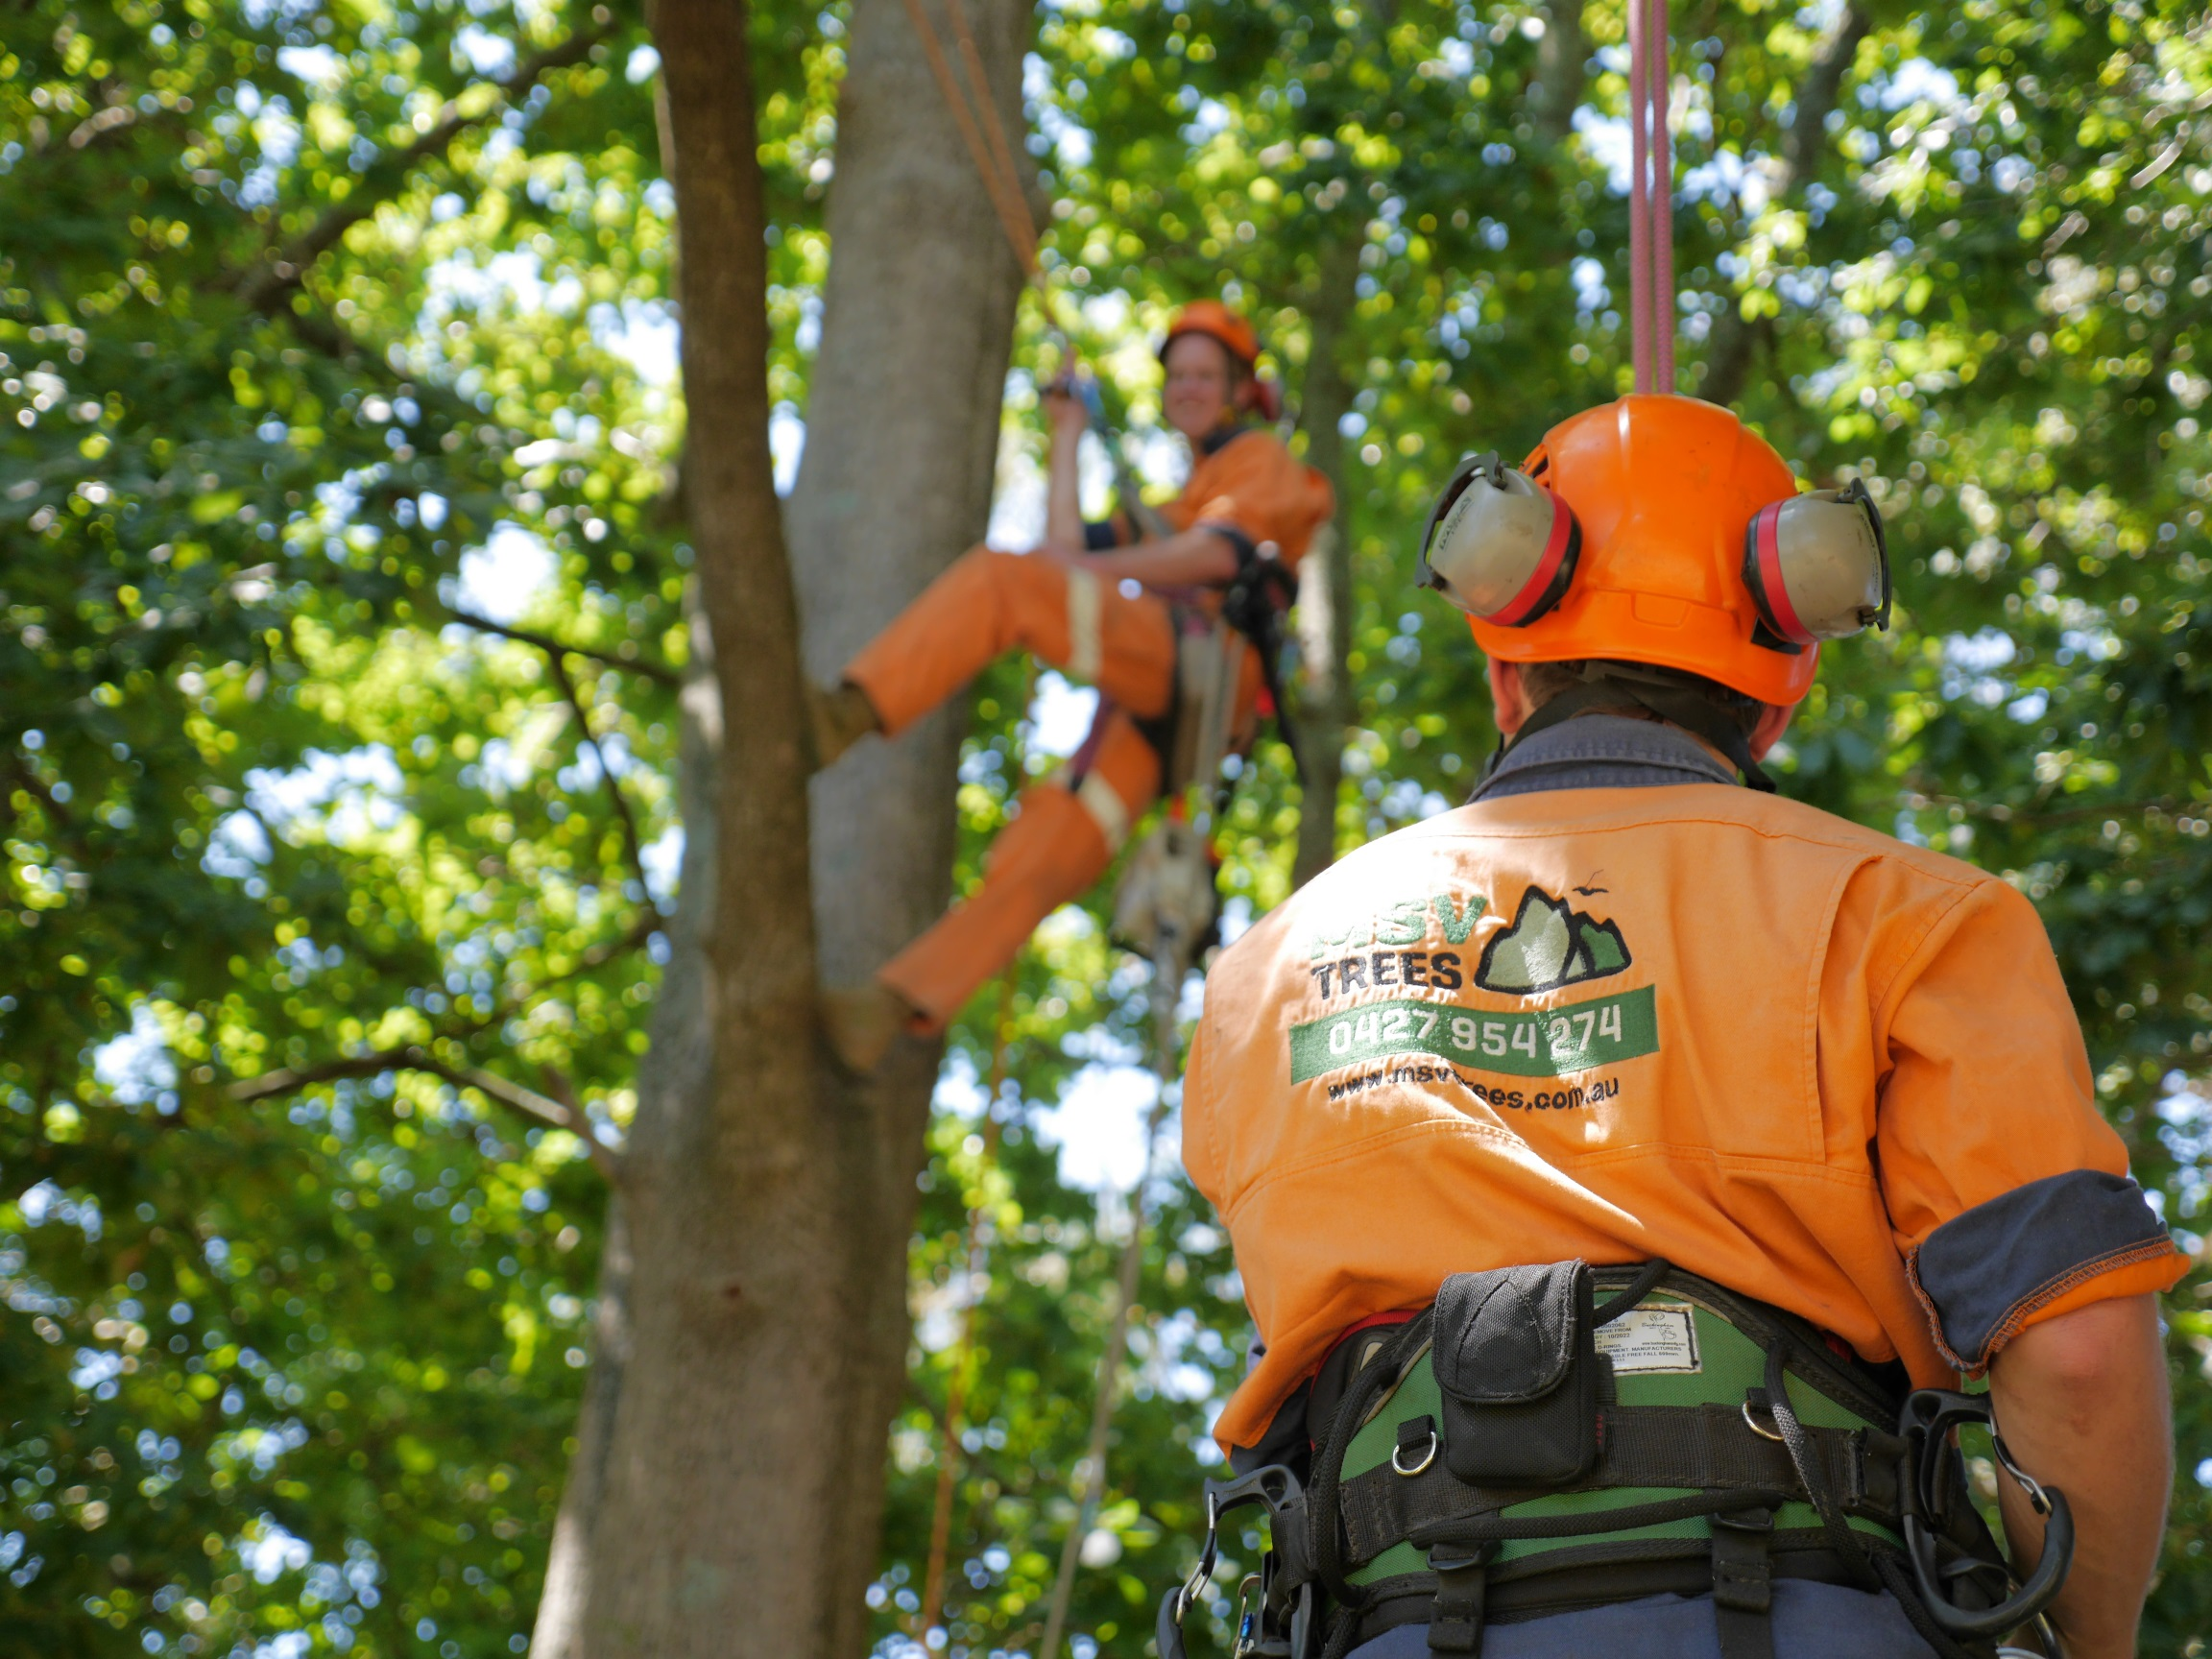 Mark and Noah Arborist services